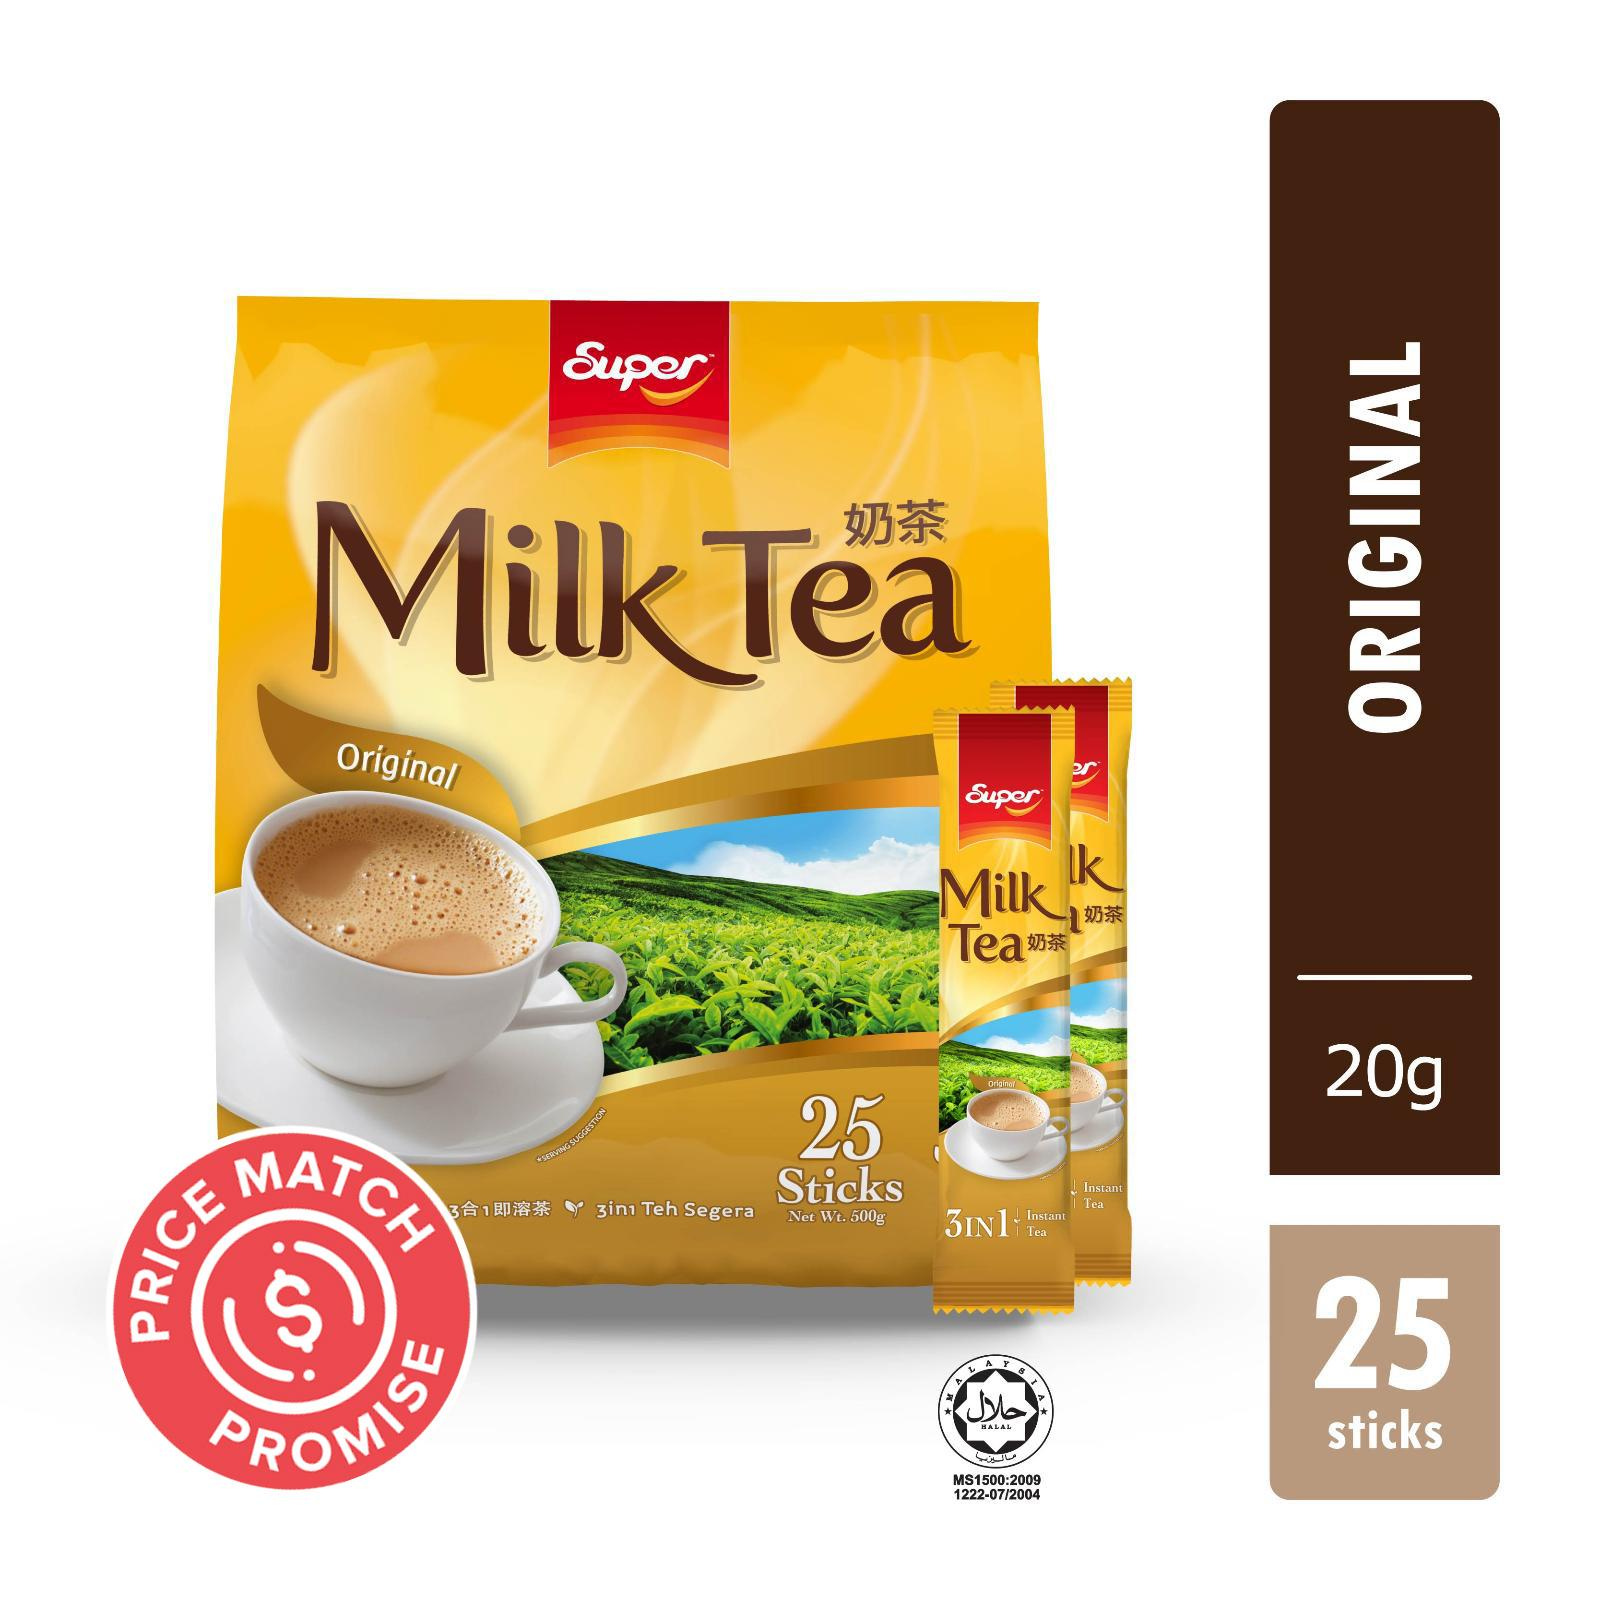 SUPER Instant Milk Tea 3-In-1 Original 25sX20g